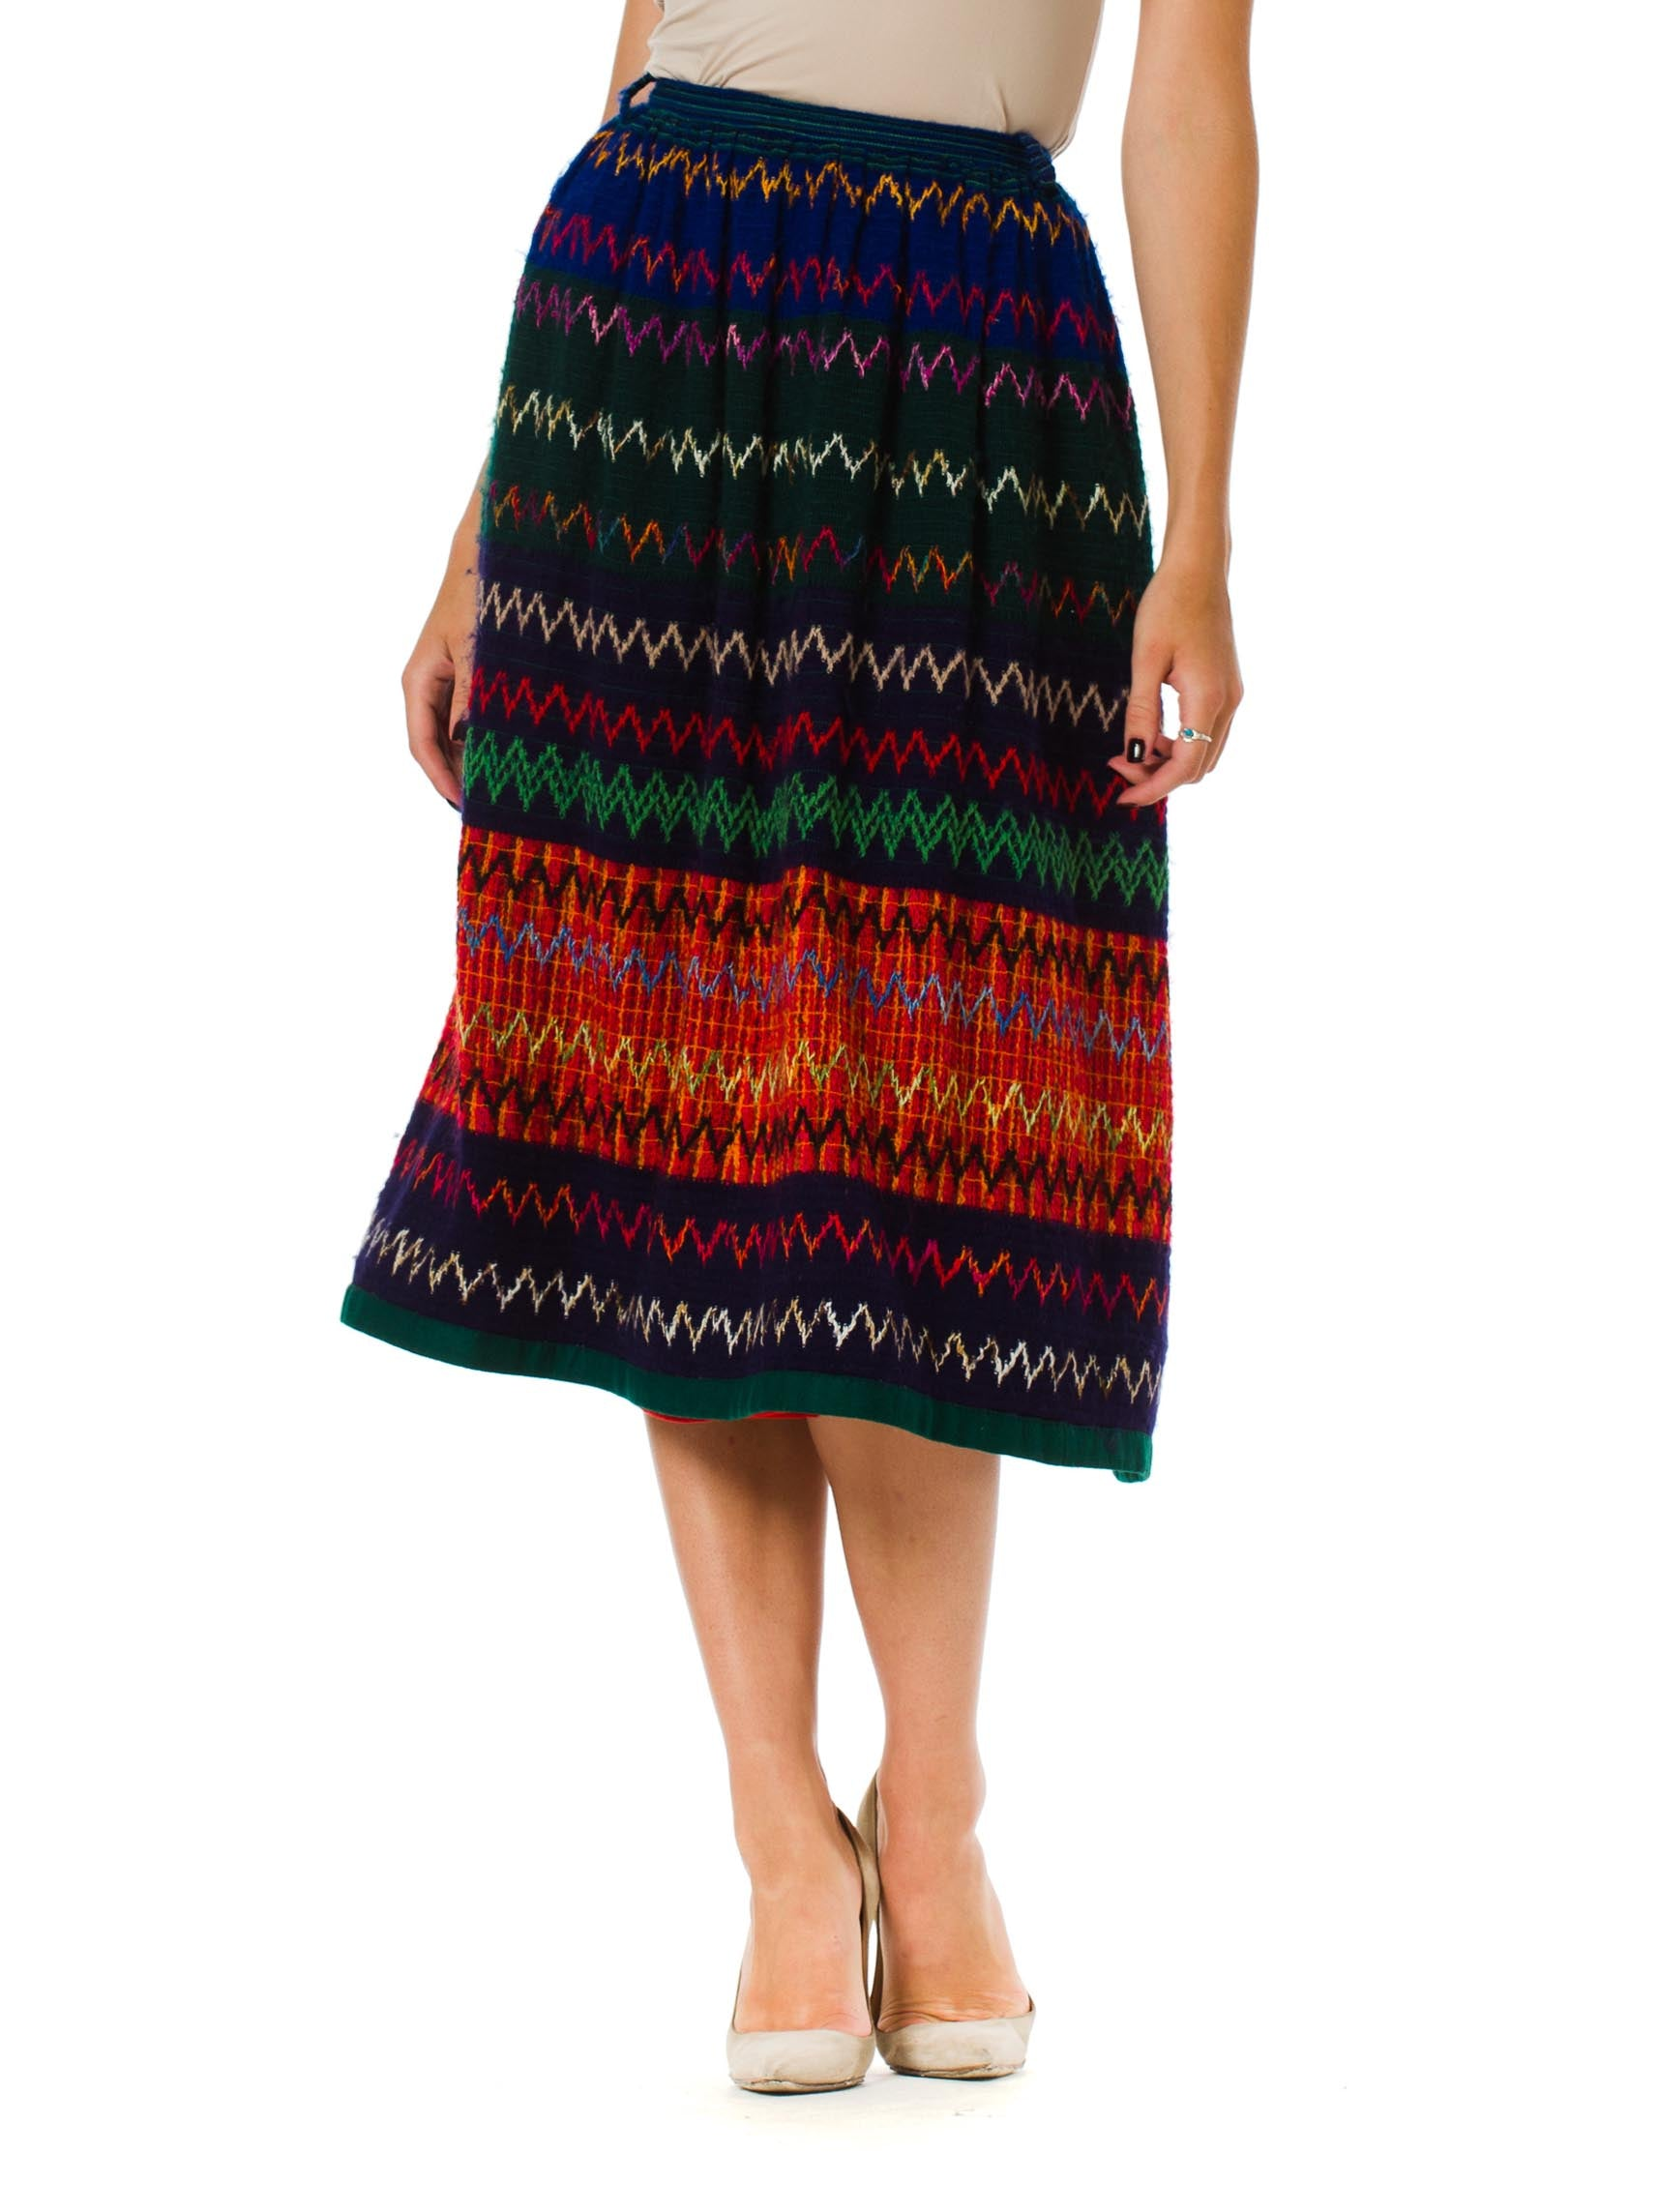 1970s Lanvin Boho Wool Skirt